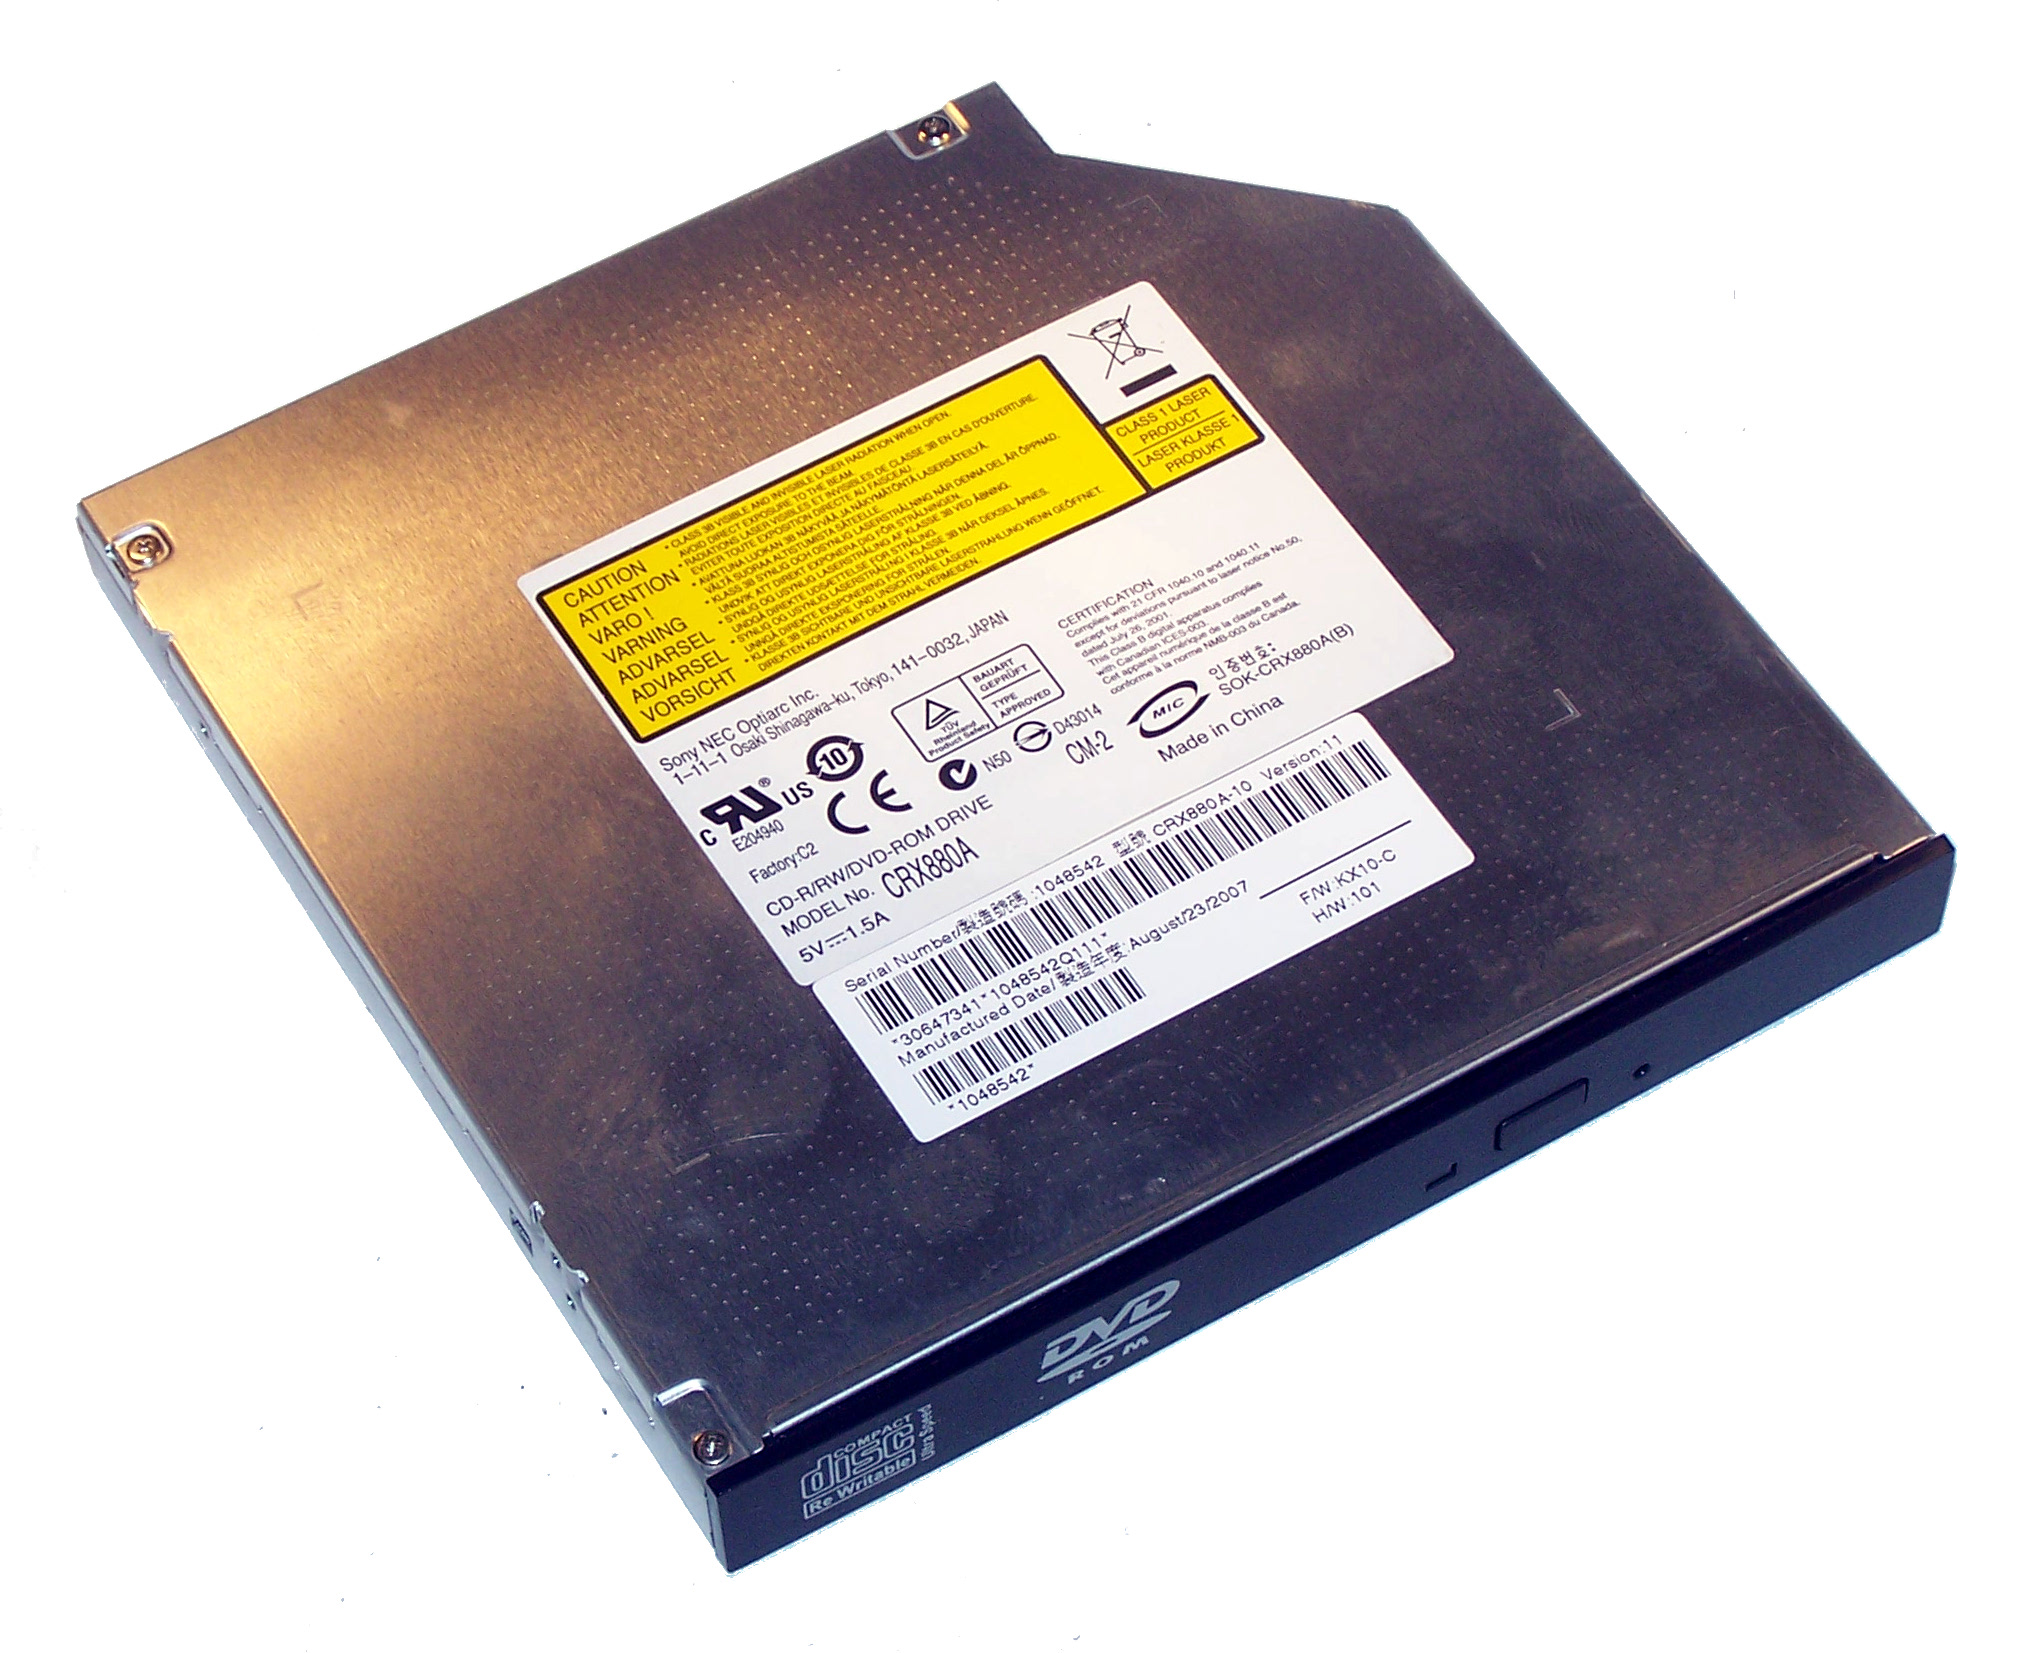 OPTIARC CD RW CRX880A TREIBER WINDOWS XP